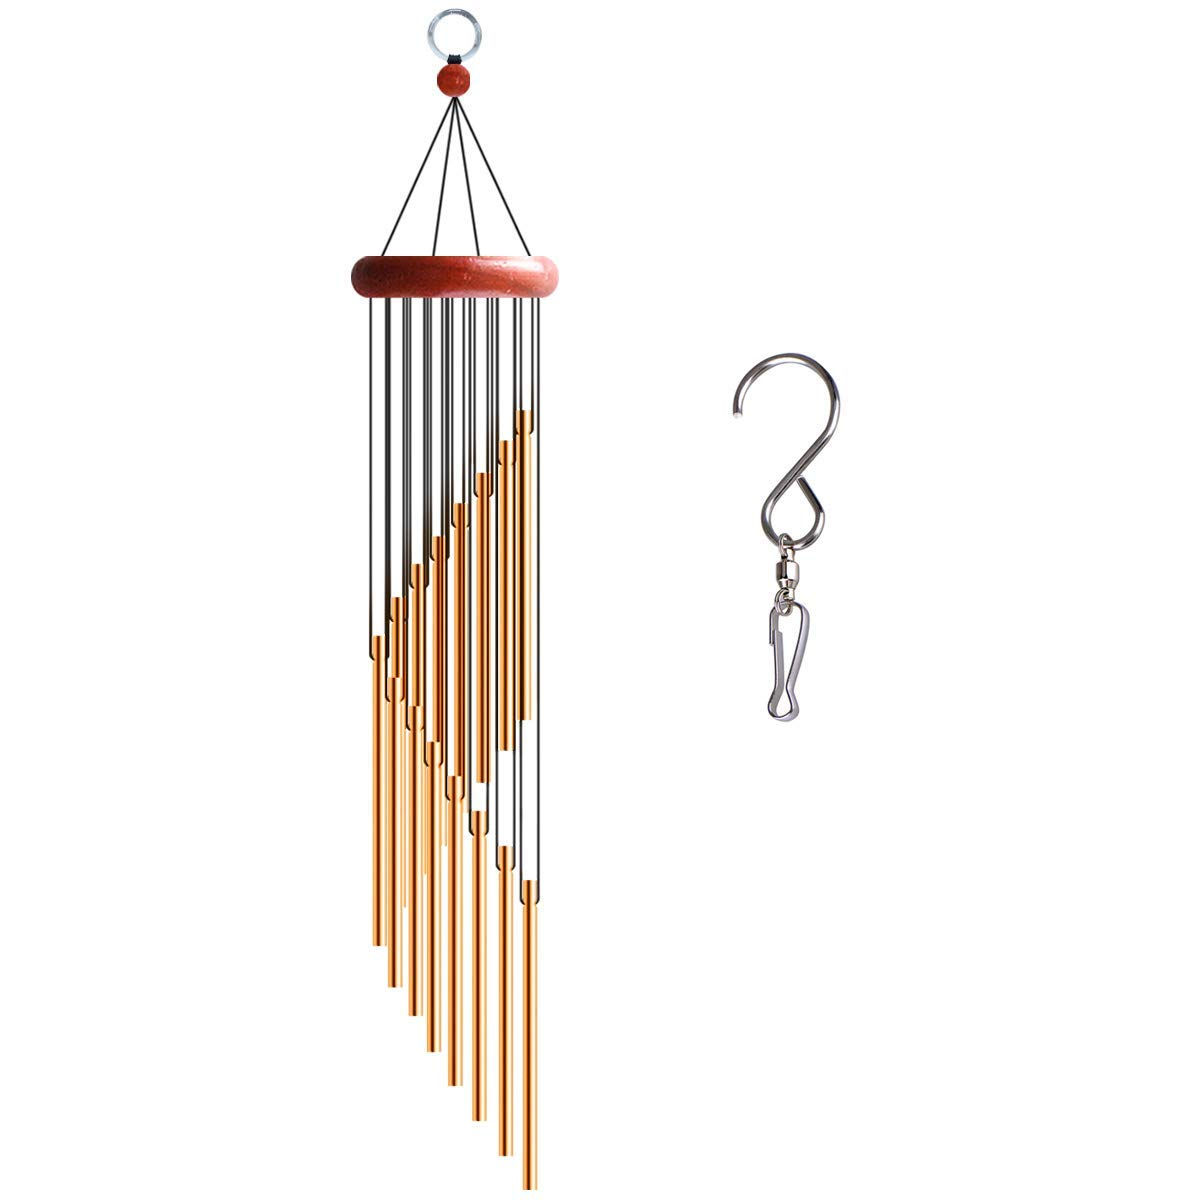 Chasgo Wind Chime Outdoor Indoor Amazing Grace Memorial Wind Chime Deep Tone with Melody Bells Sounding Musical, Gold